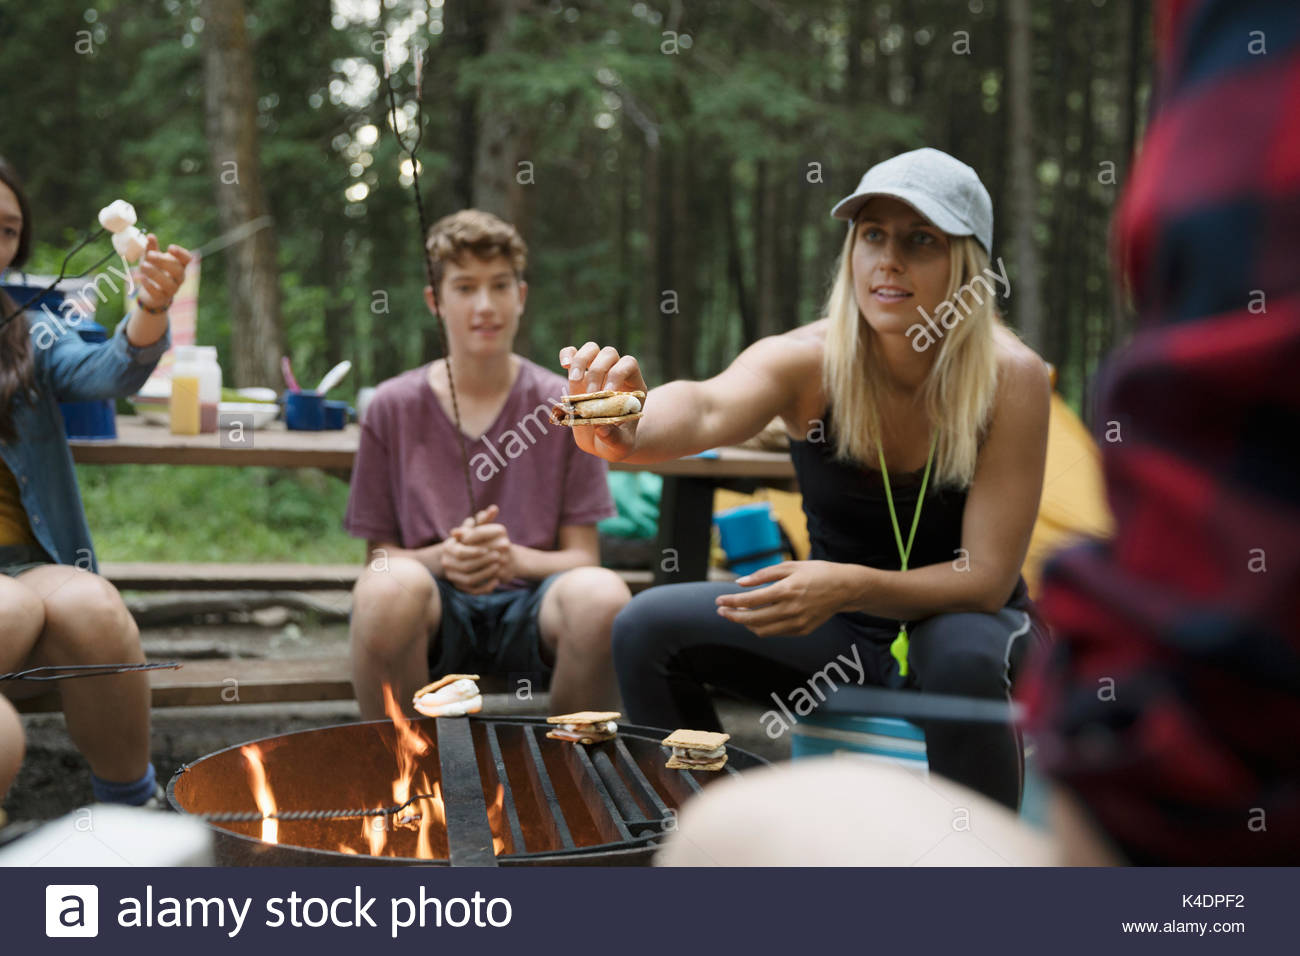 Female teacher and teenage outdoor school students making smores at campsite campfire - Stock Image